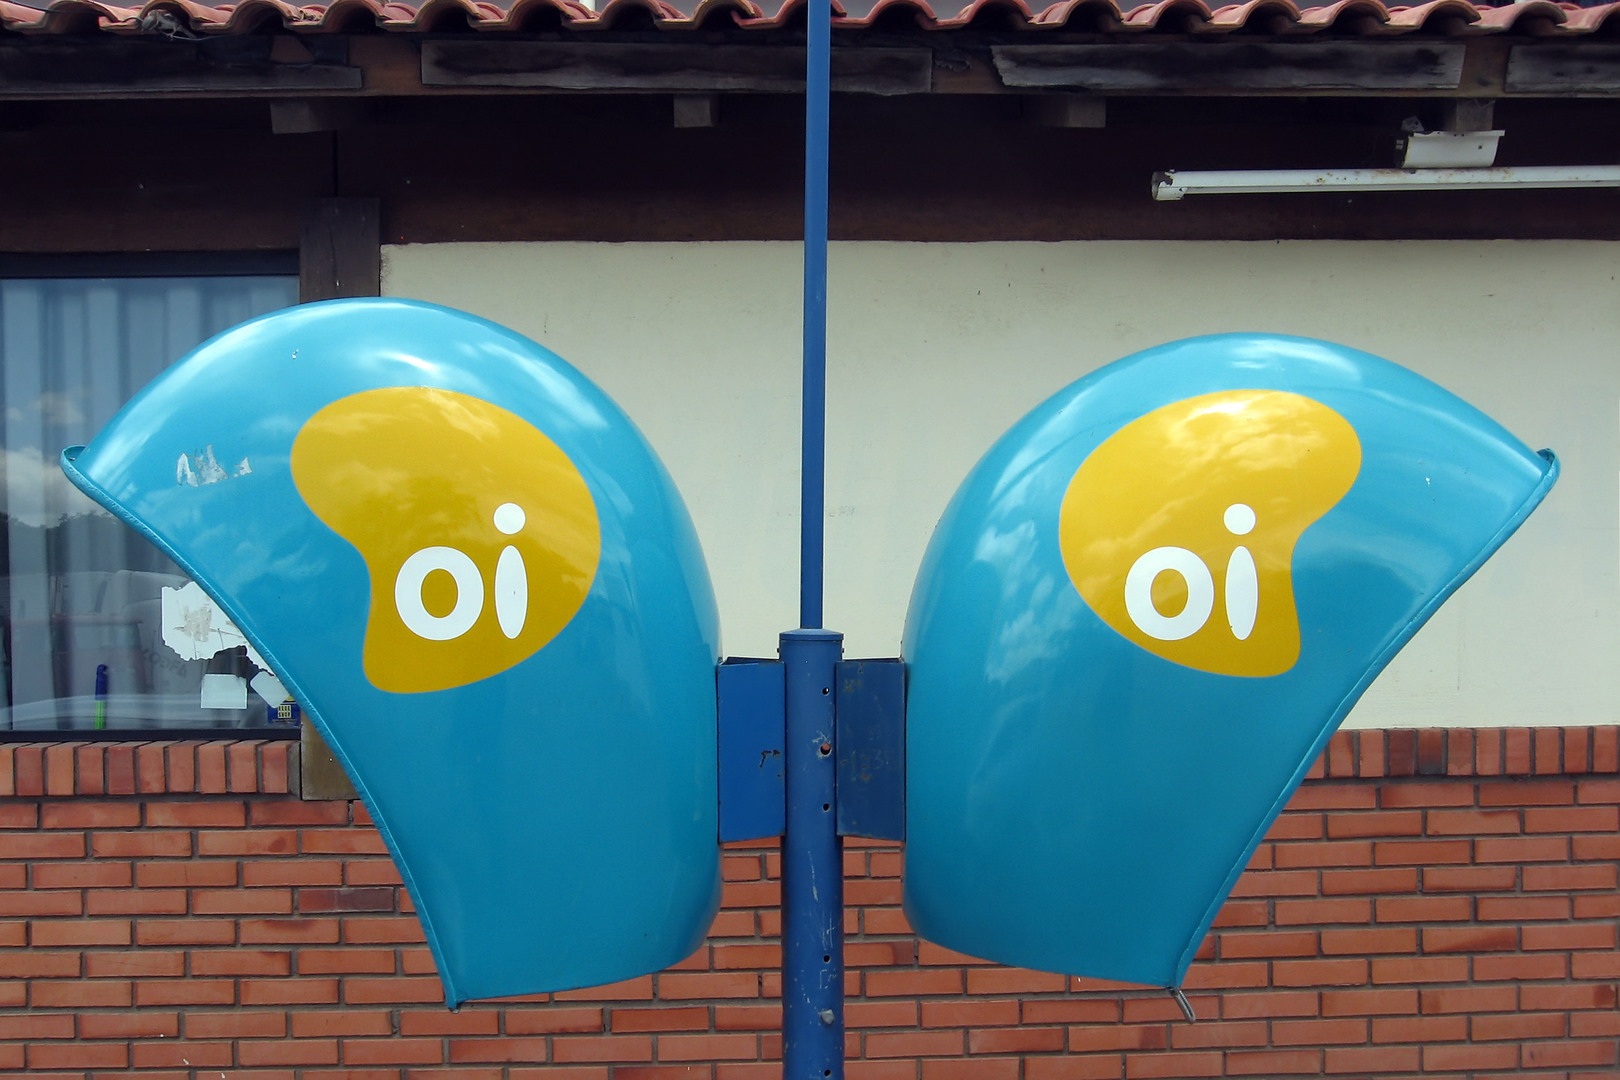 Oi branding, in two phone booths in Brazil